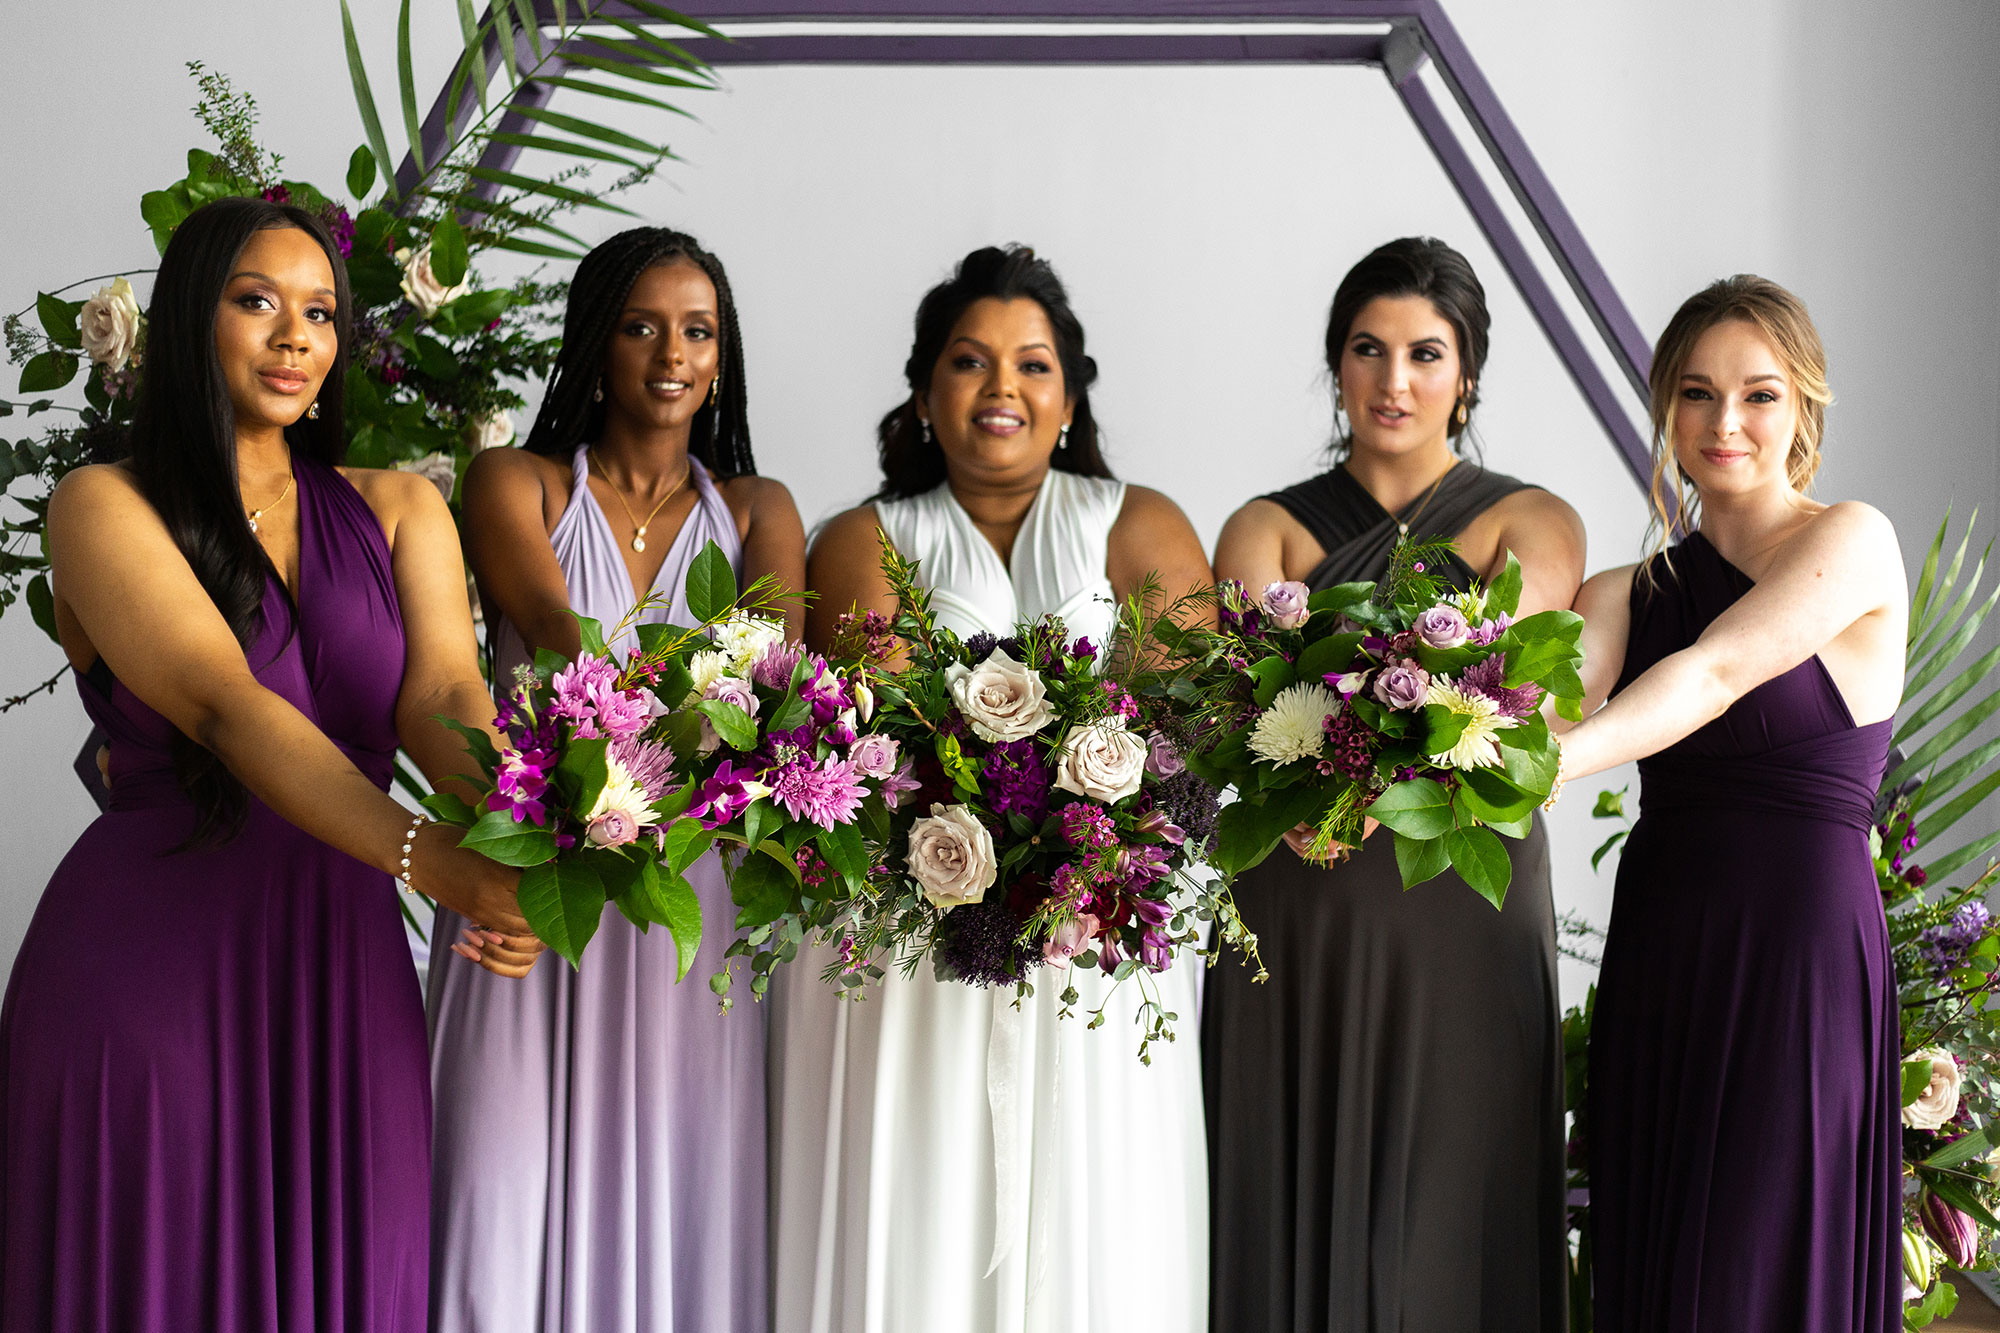 Henkaa fall wedding party dresses in purple and gray tones with bride in white and bridesmaids holding bouquets